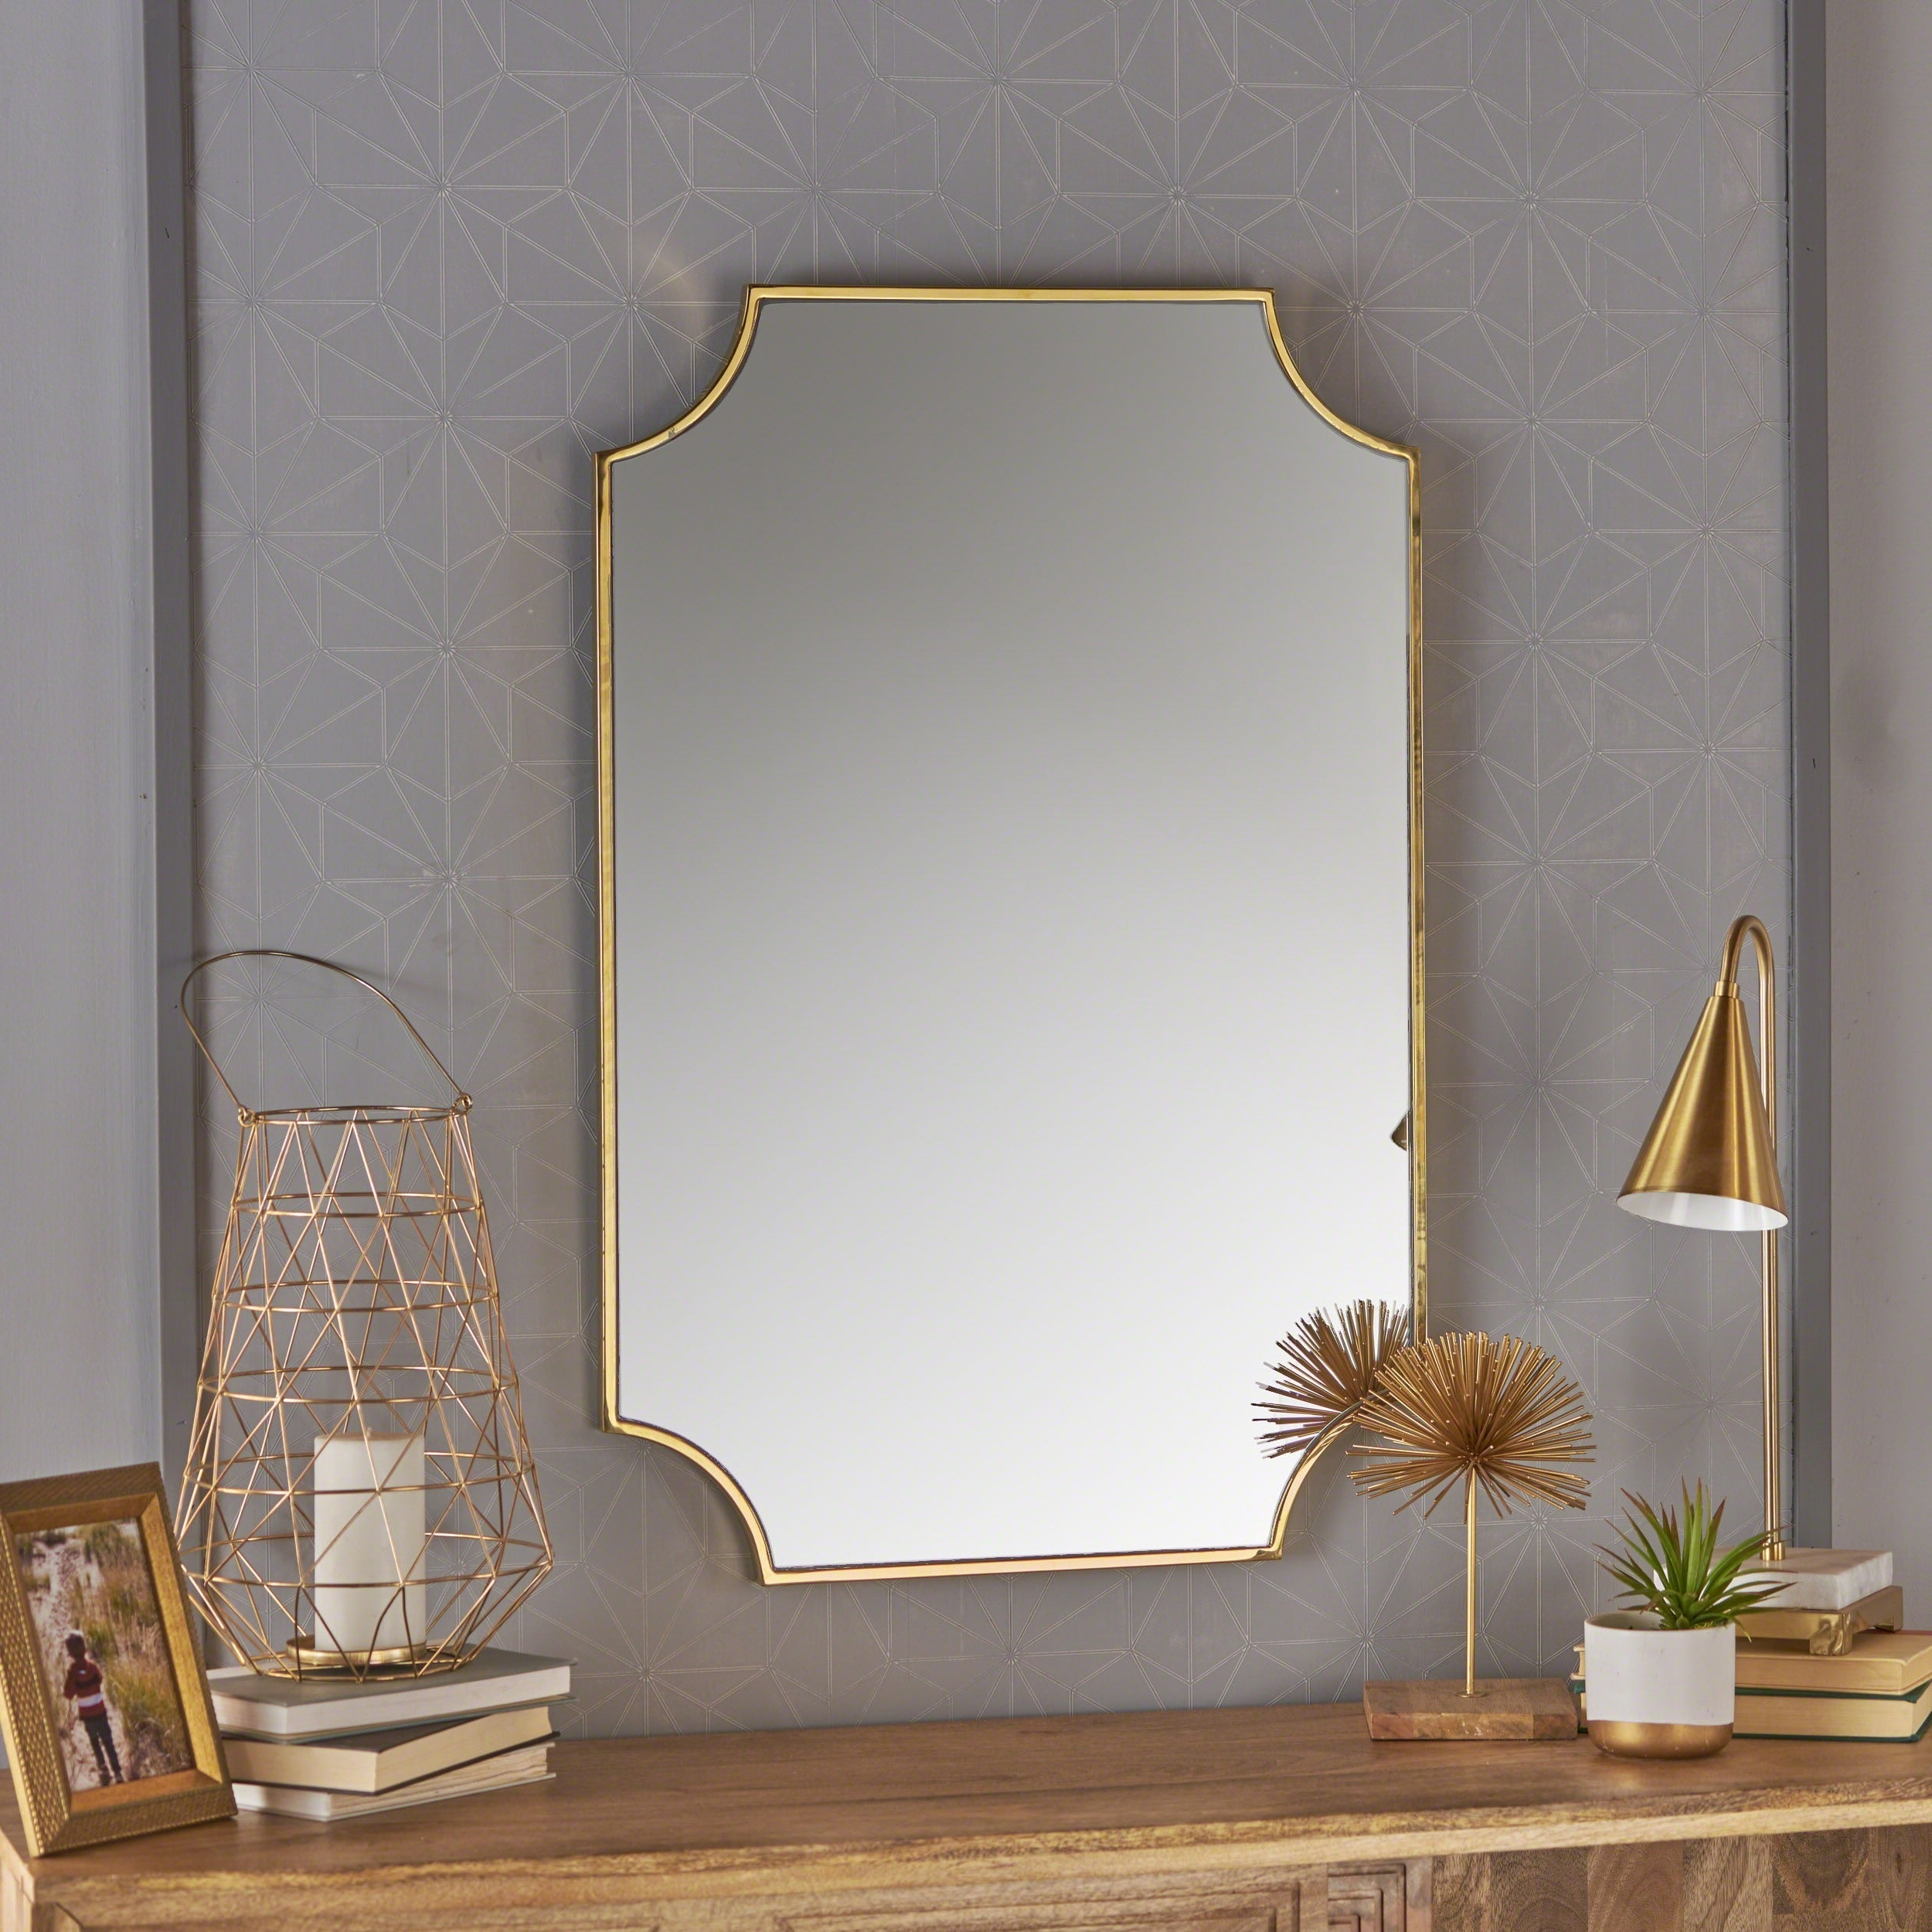 Decorative Large Wall Mirrors Inside Current Wall Mirror (View 4 of 20)